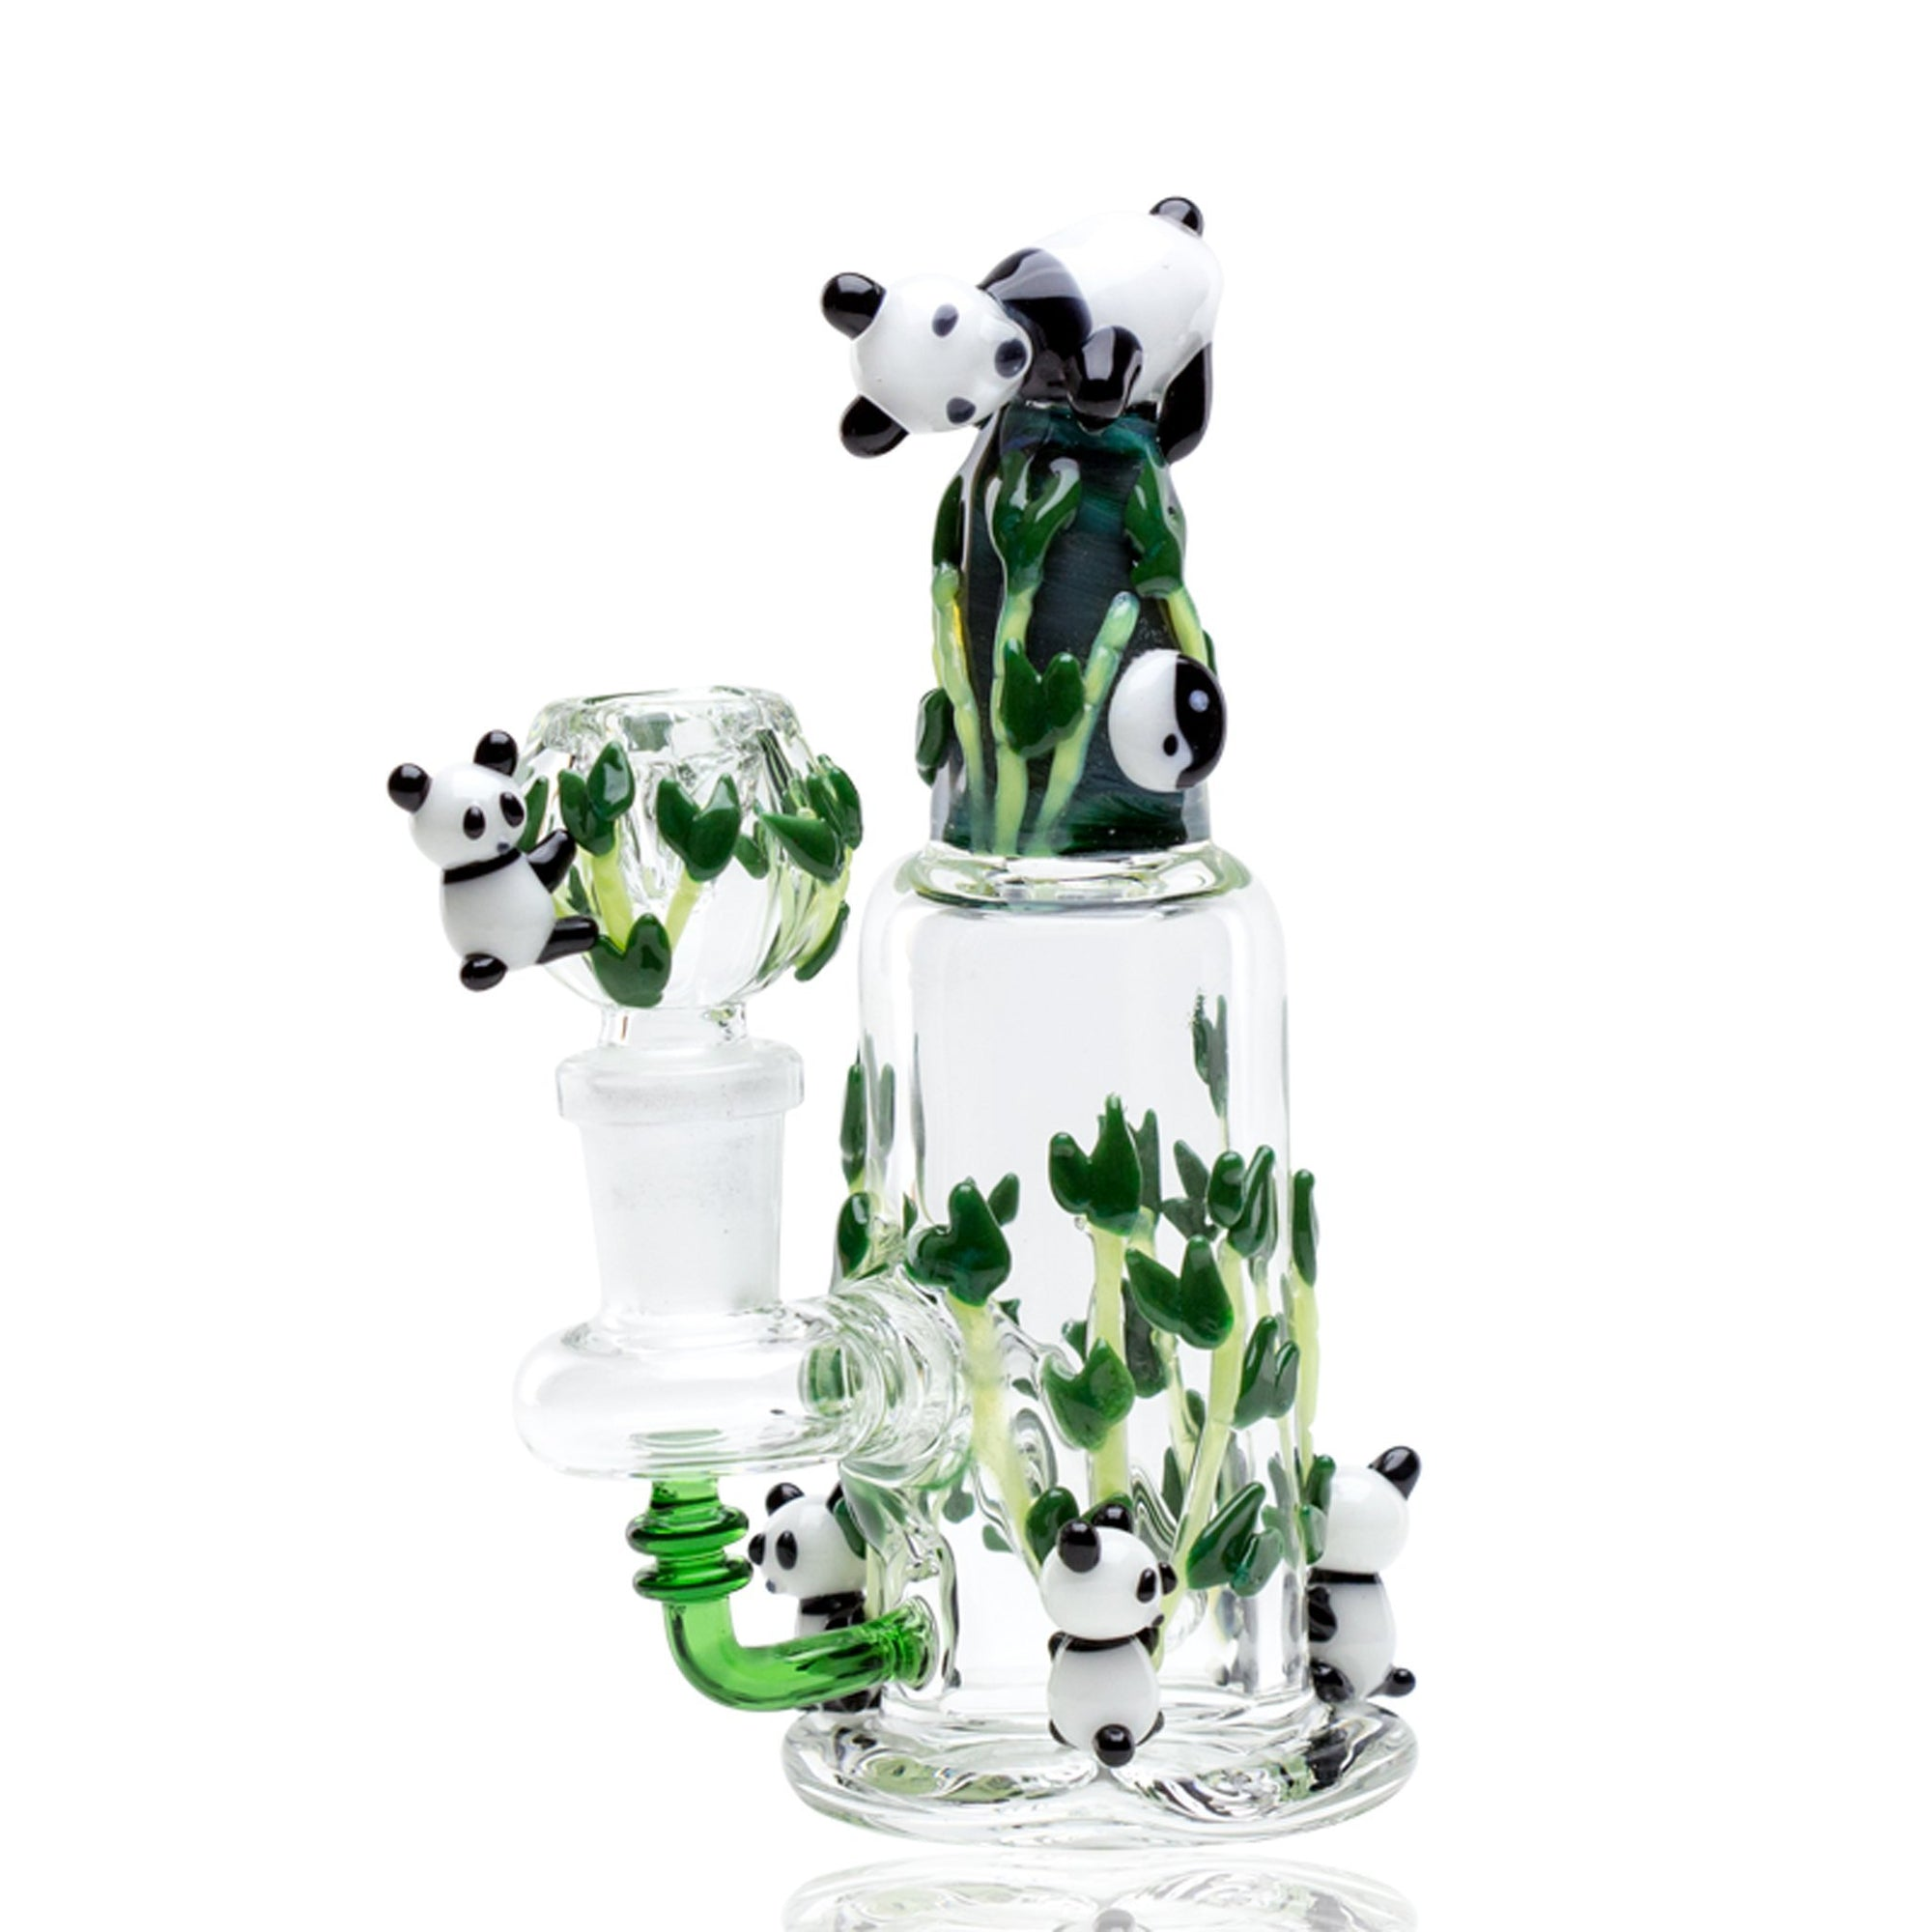 Full upright shot of 6.5 inch dab rig with cute pandas on bamboo leaves design green downstem banger on left